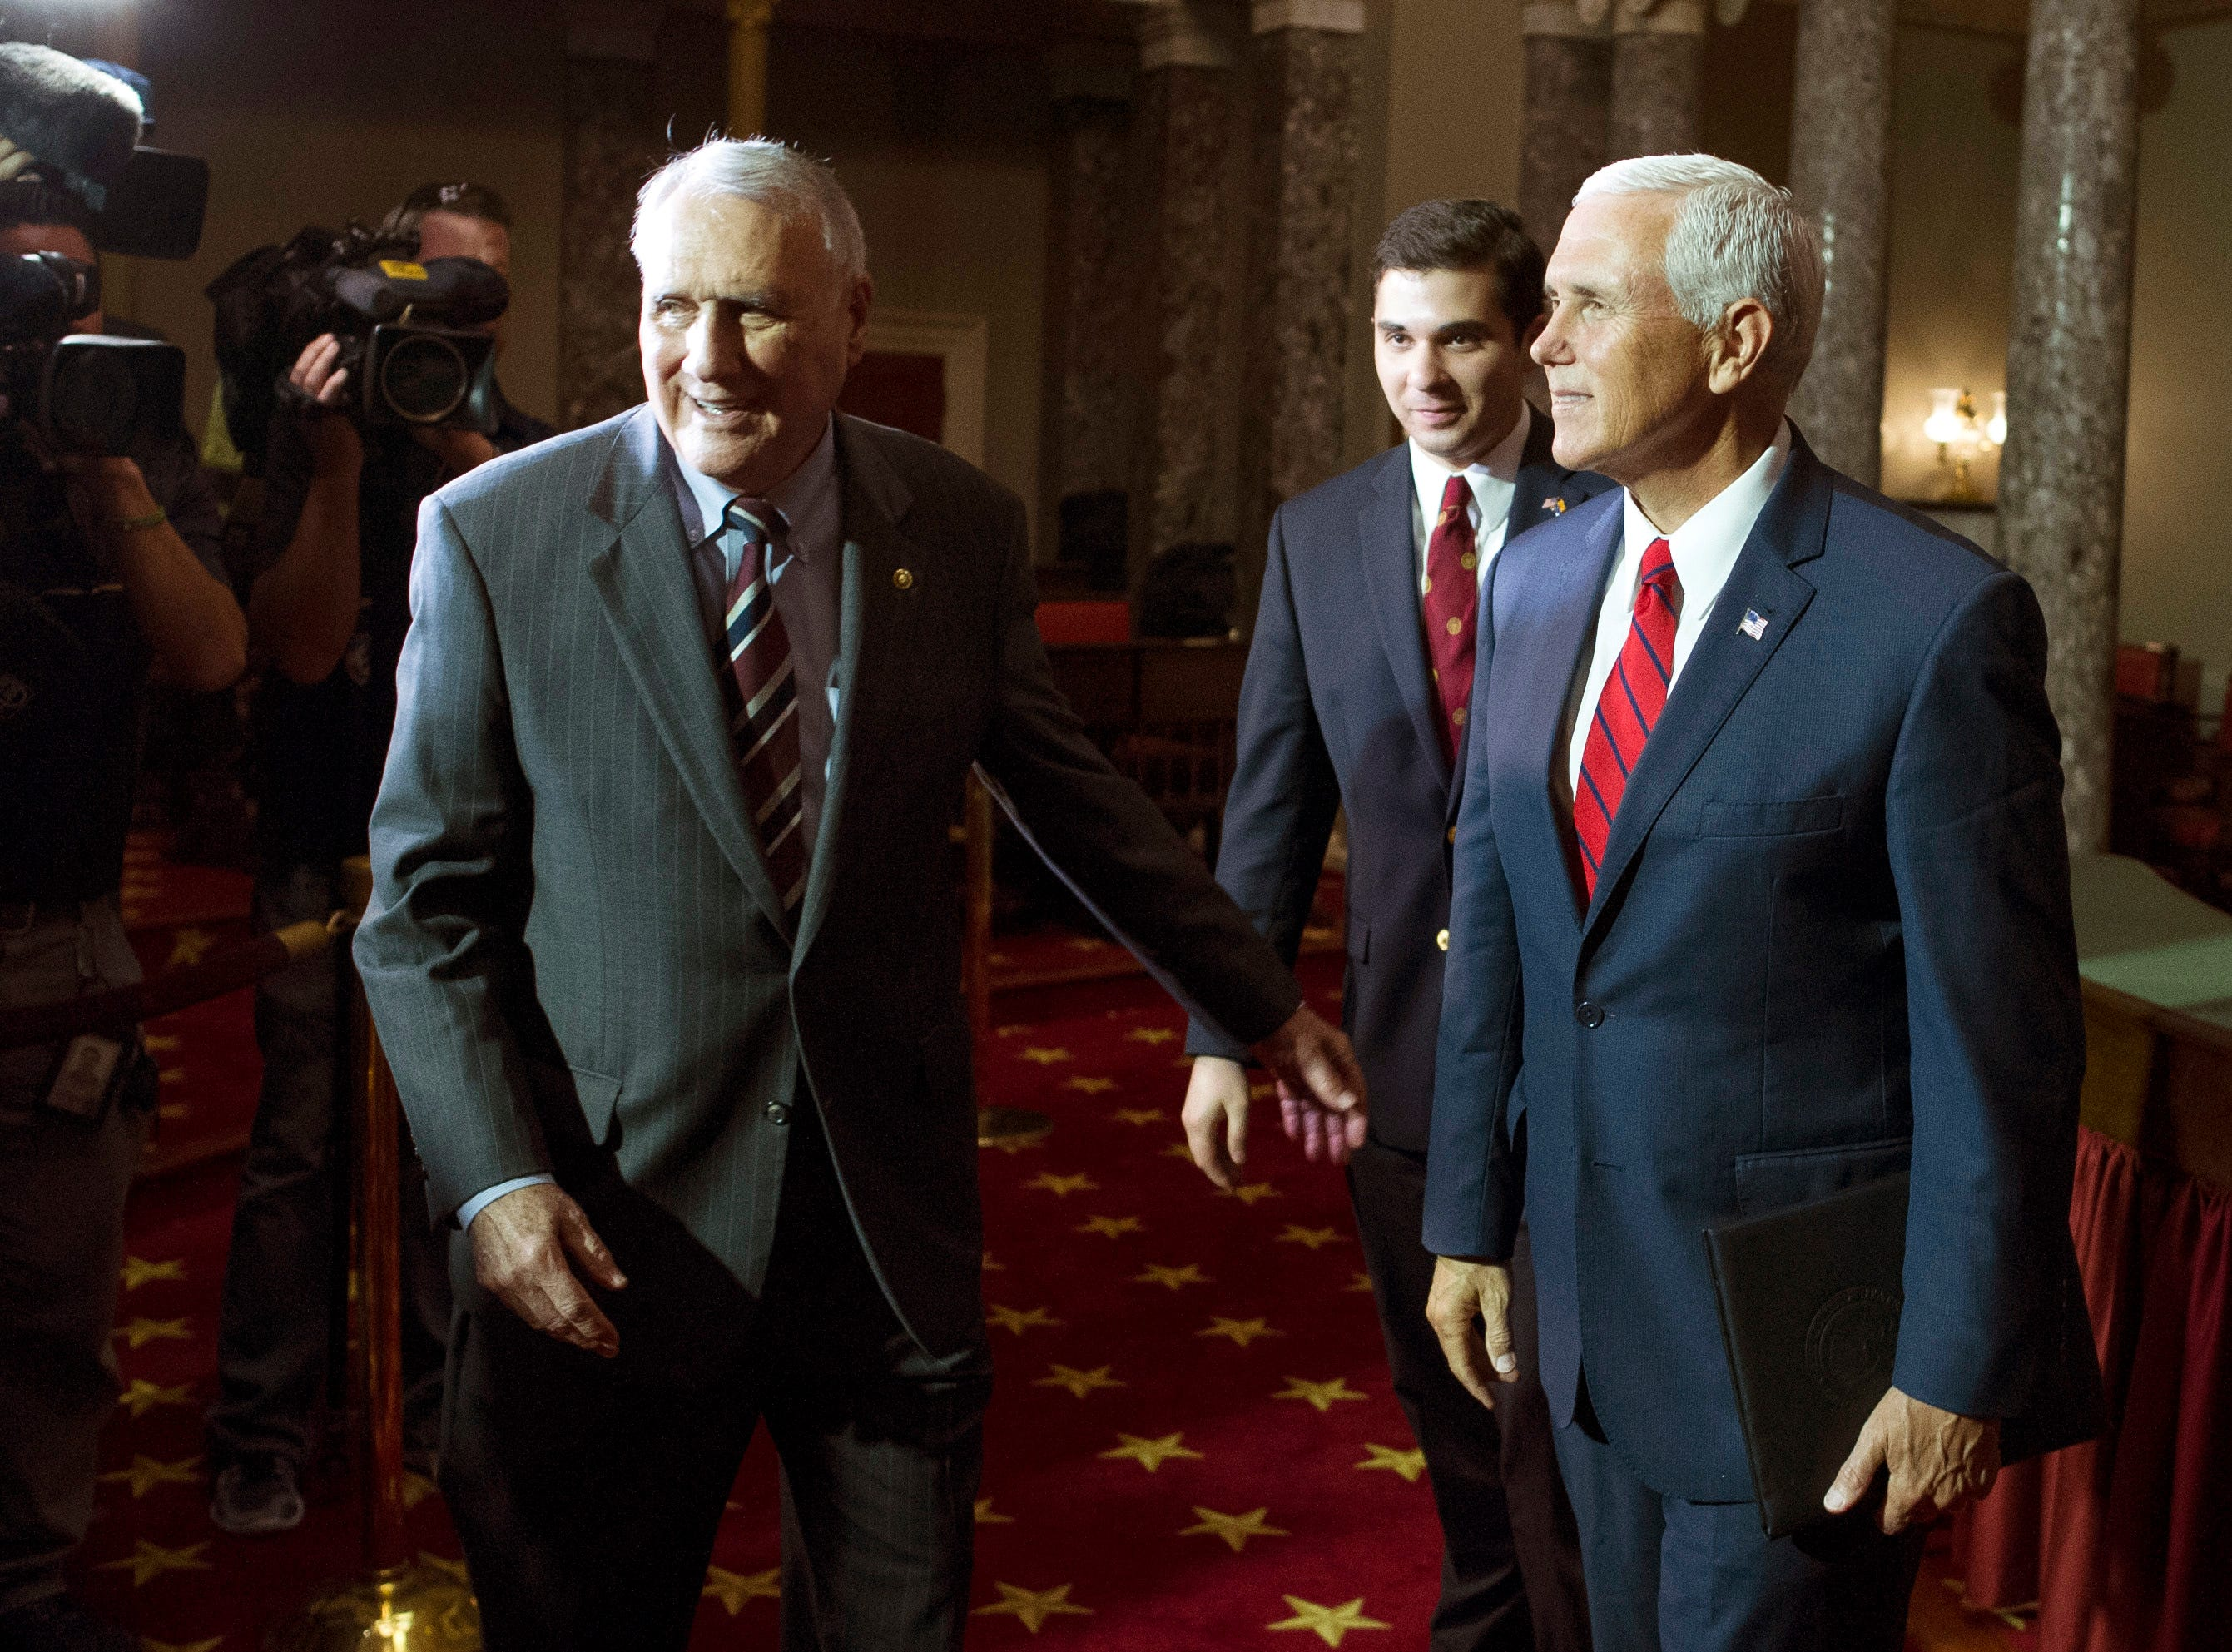 Vice President Mike Pence (right), Sen. Jon Kyl, R-Ariz., (left) and his grandson Christopher Gavin, leave the Old Senate Chamber after a ceremonial swearing-in for Kyl on Capitol Hill, in Washington, on Sept. 5, 2018.